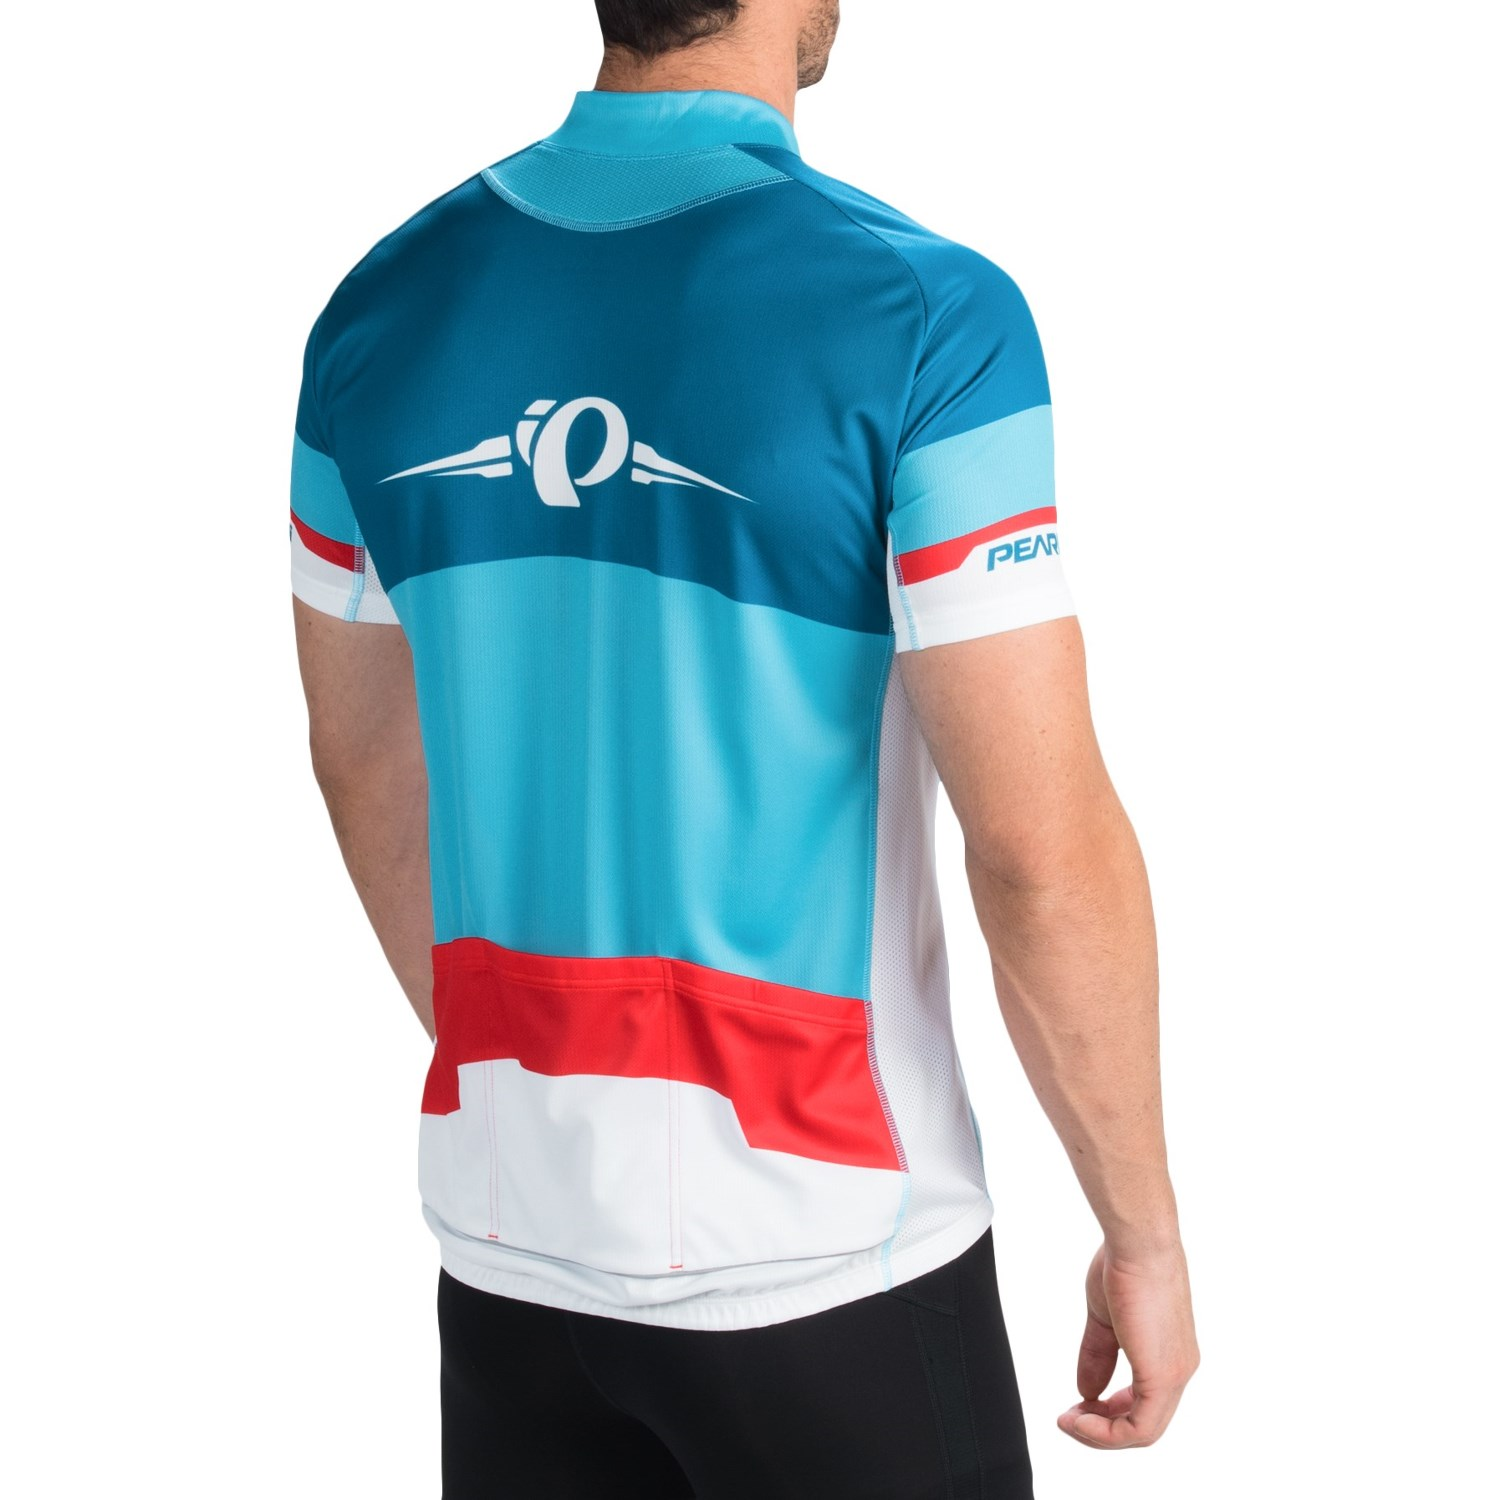 Pearl izumi elite ltd cycling jersey for men save 80 for Pearl izumi cycling shirt